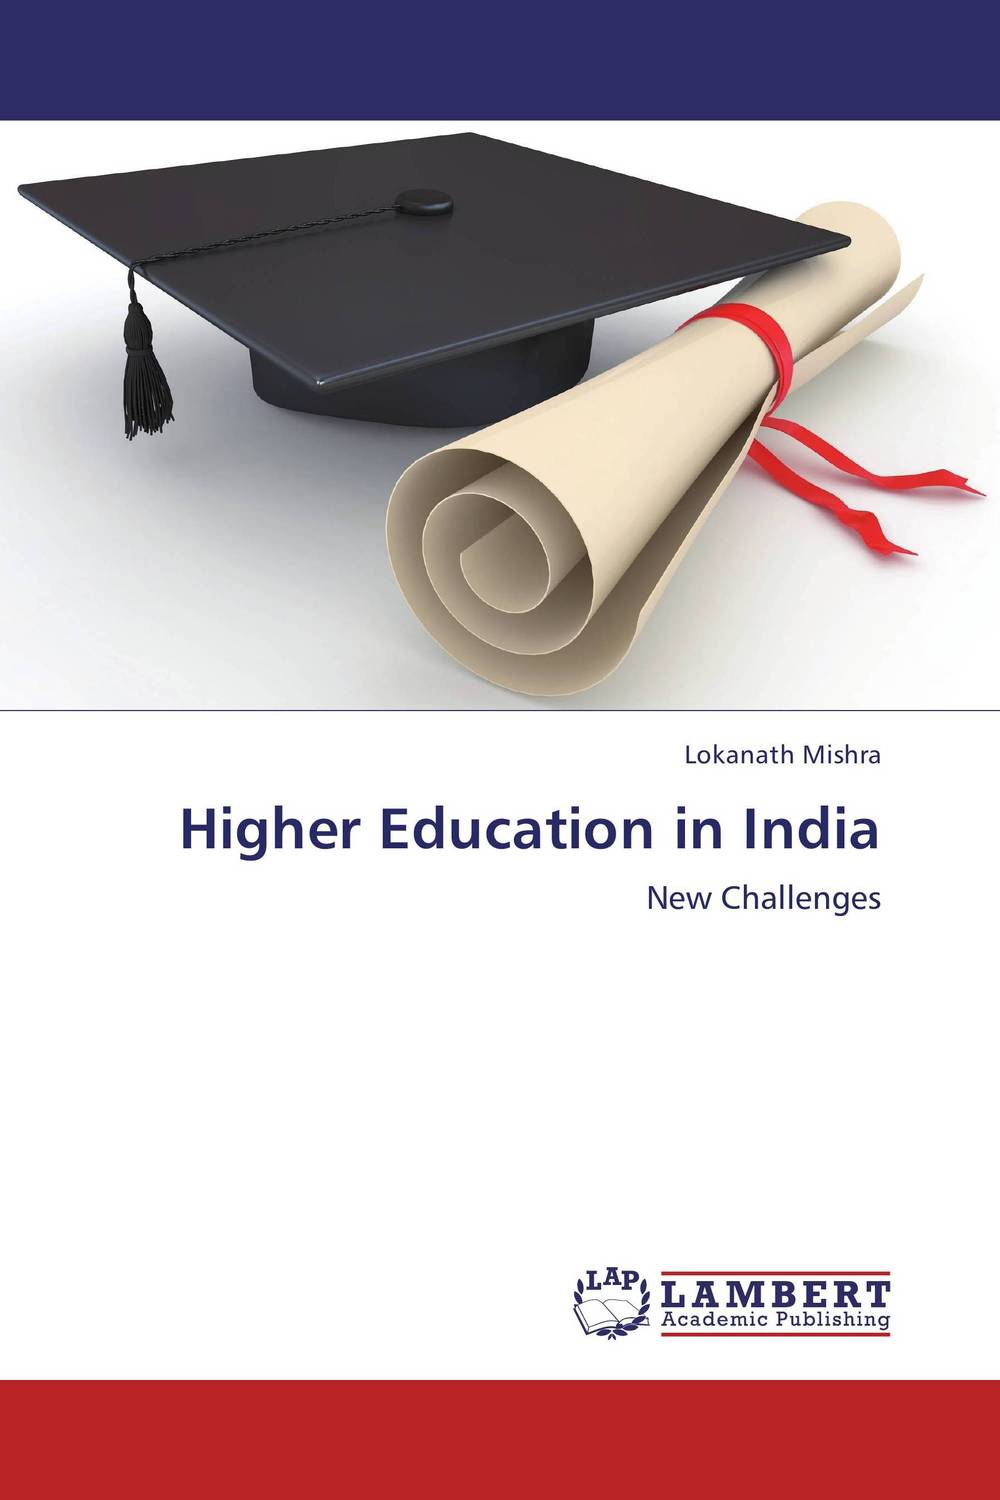 Higher Education in India neema nitume financing higher education in tanzania